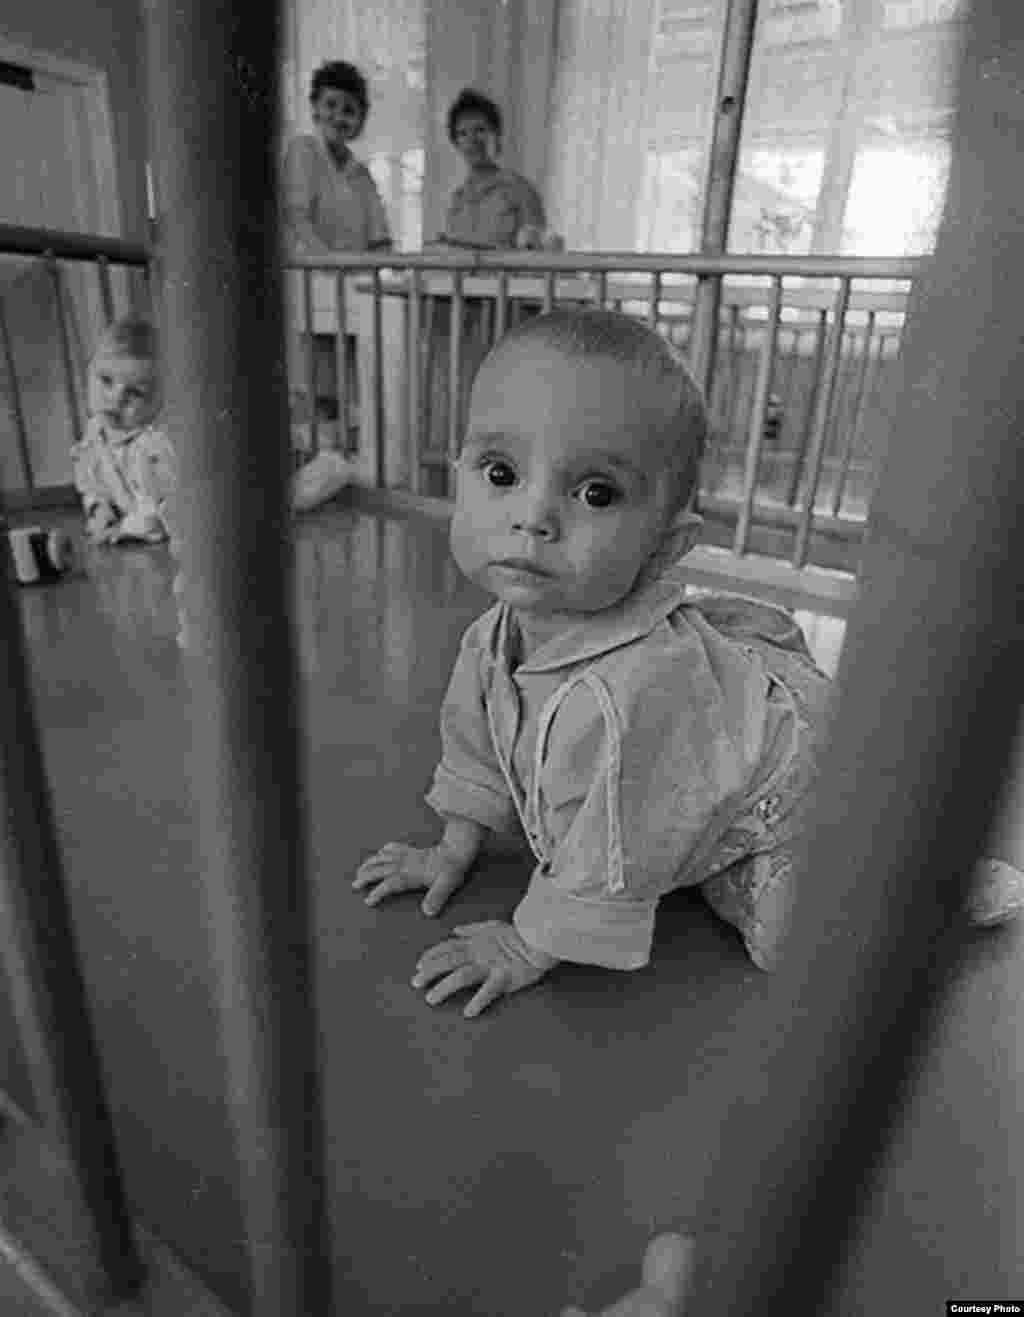 St. Petersburg-based photographer Aleksandr Belenky has spent years documenting the lives of children inside Russian orphanages. Here, a baby boy plays inside a crib in an orphanage in central St. Petersburg in 1991.